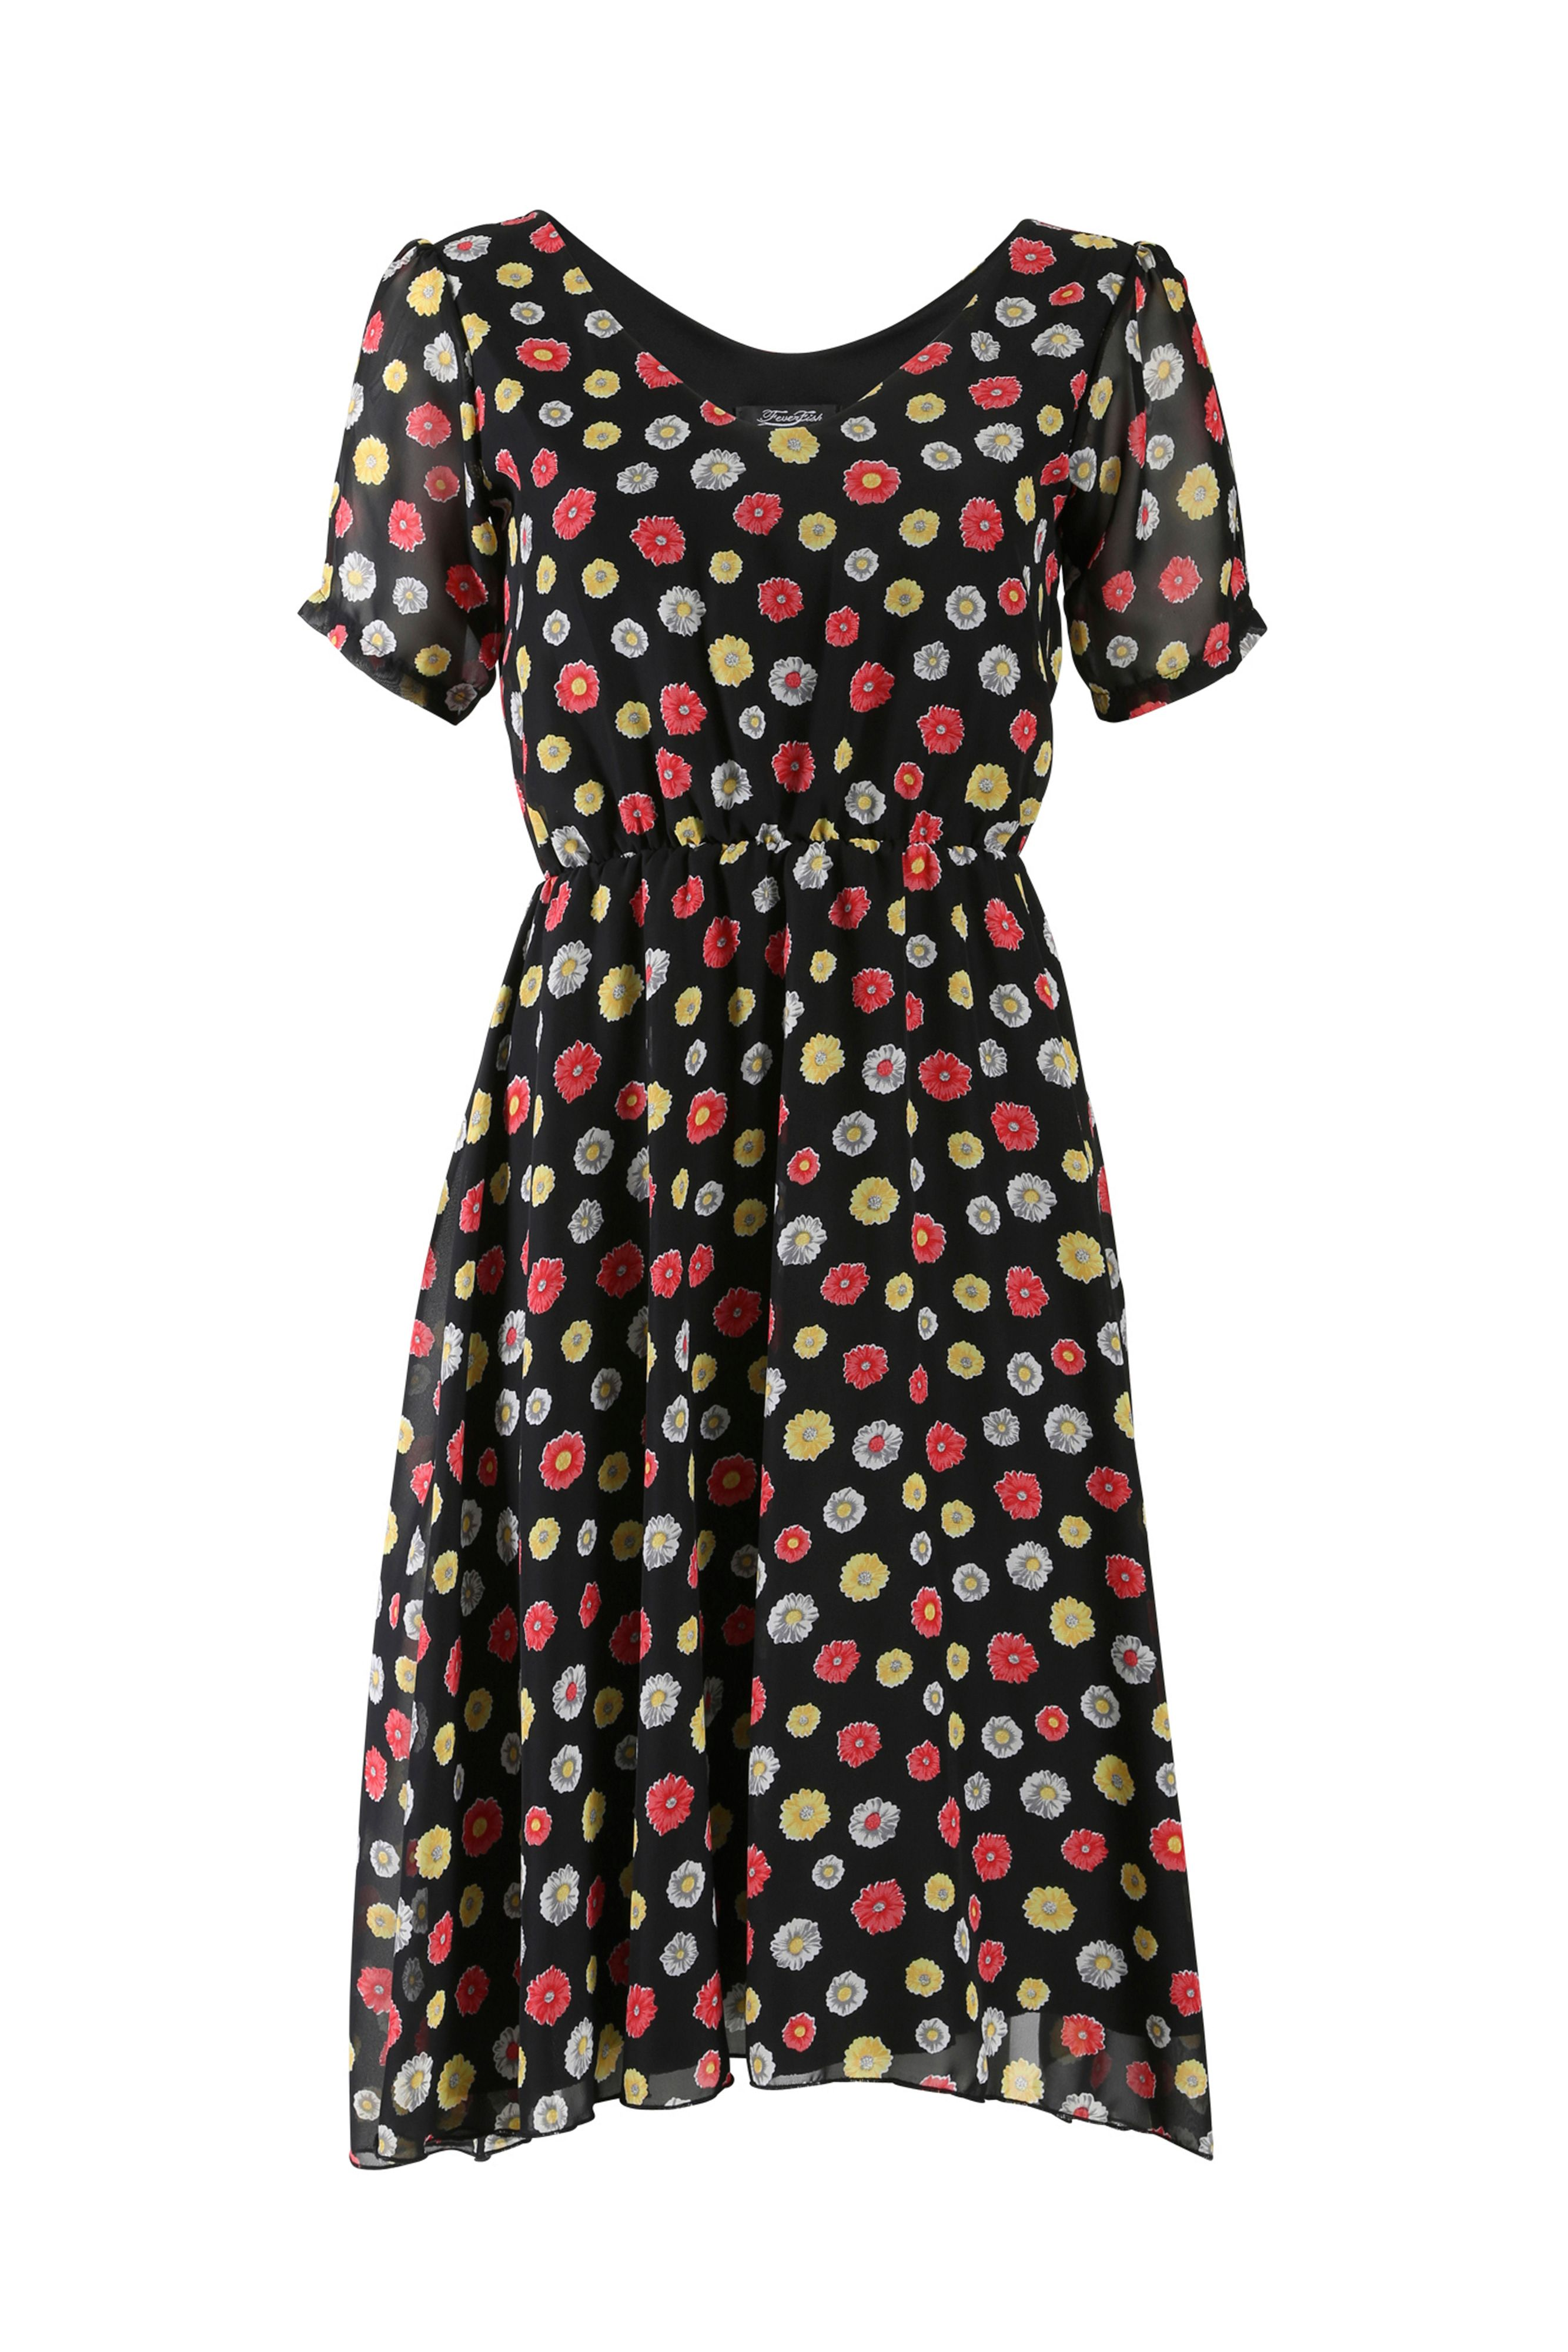 Chiffon daisy tea dress